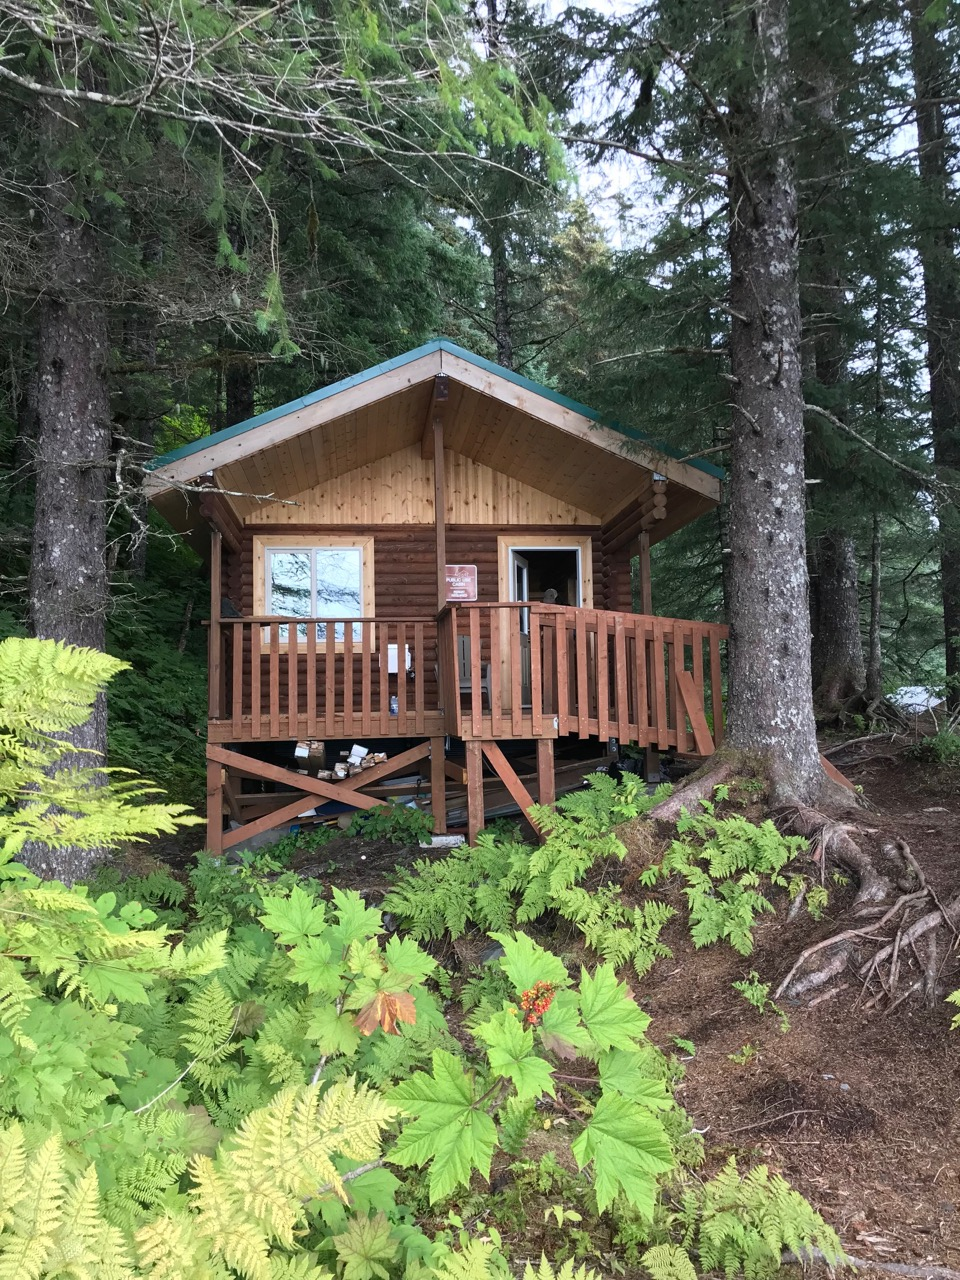 One of several public-use cabins on the trail, which extends 7 miles out to Caines Head.